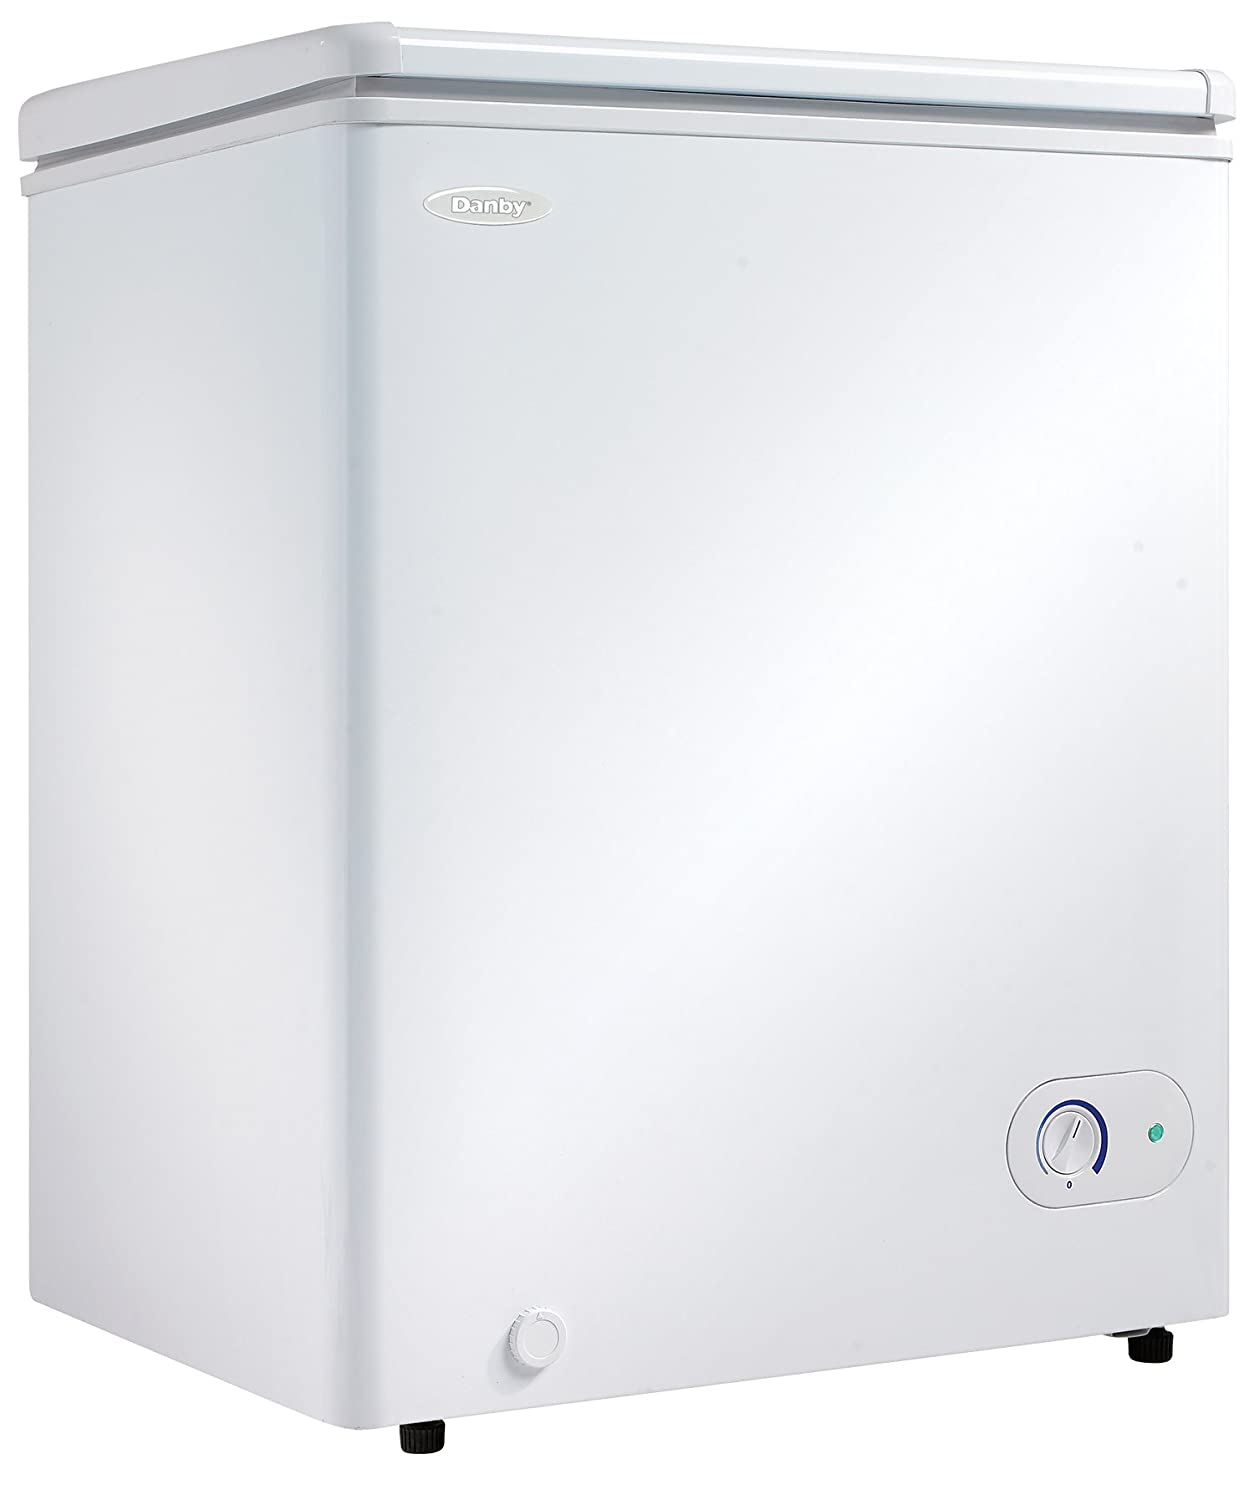 14 Cu Ft Refrigerator Danby Dcf038a1wdb1 Chest Freezer Vs Ecosolarcool Solar